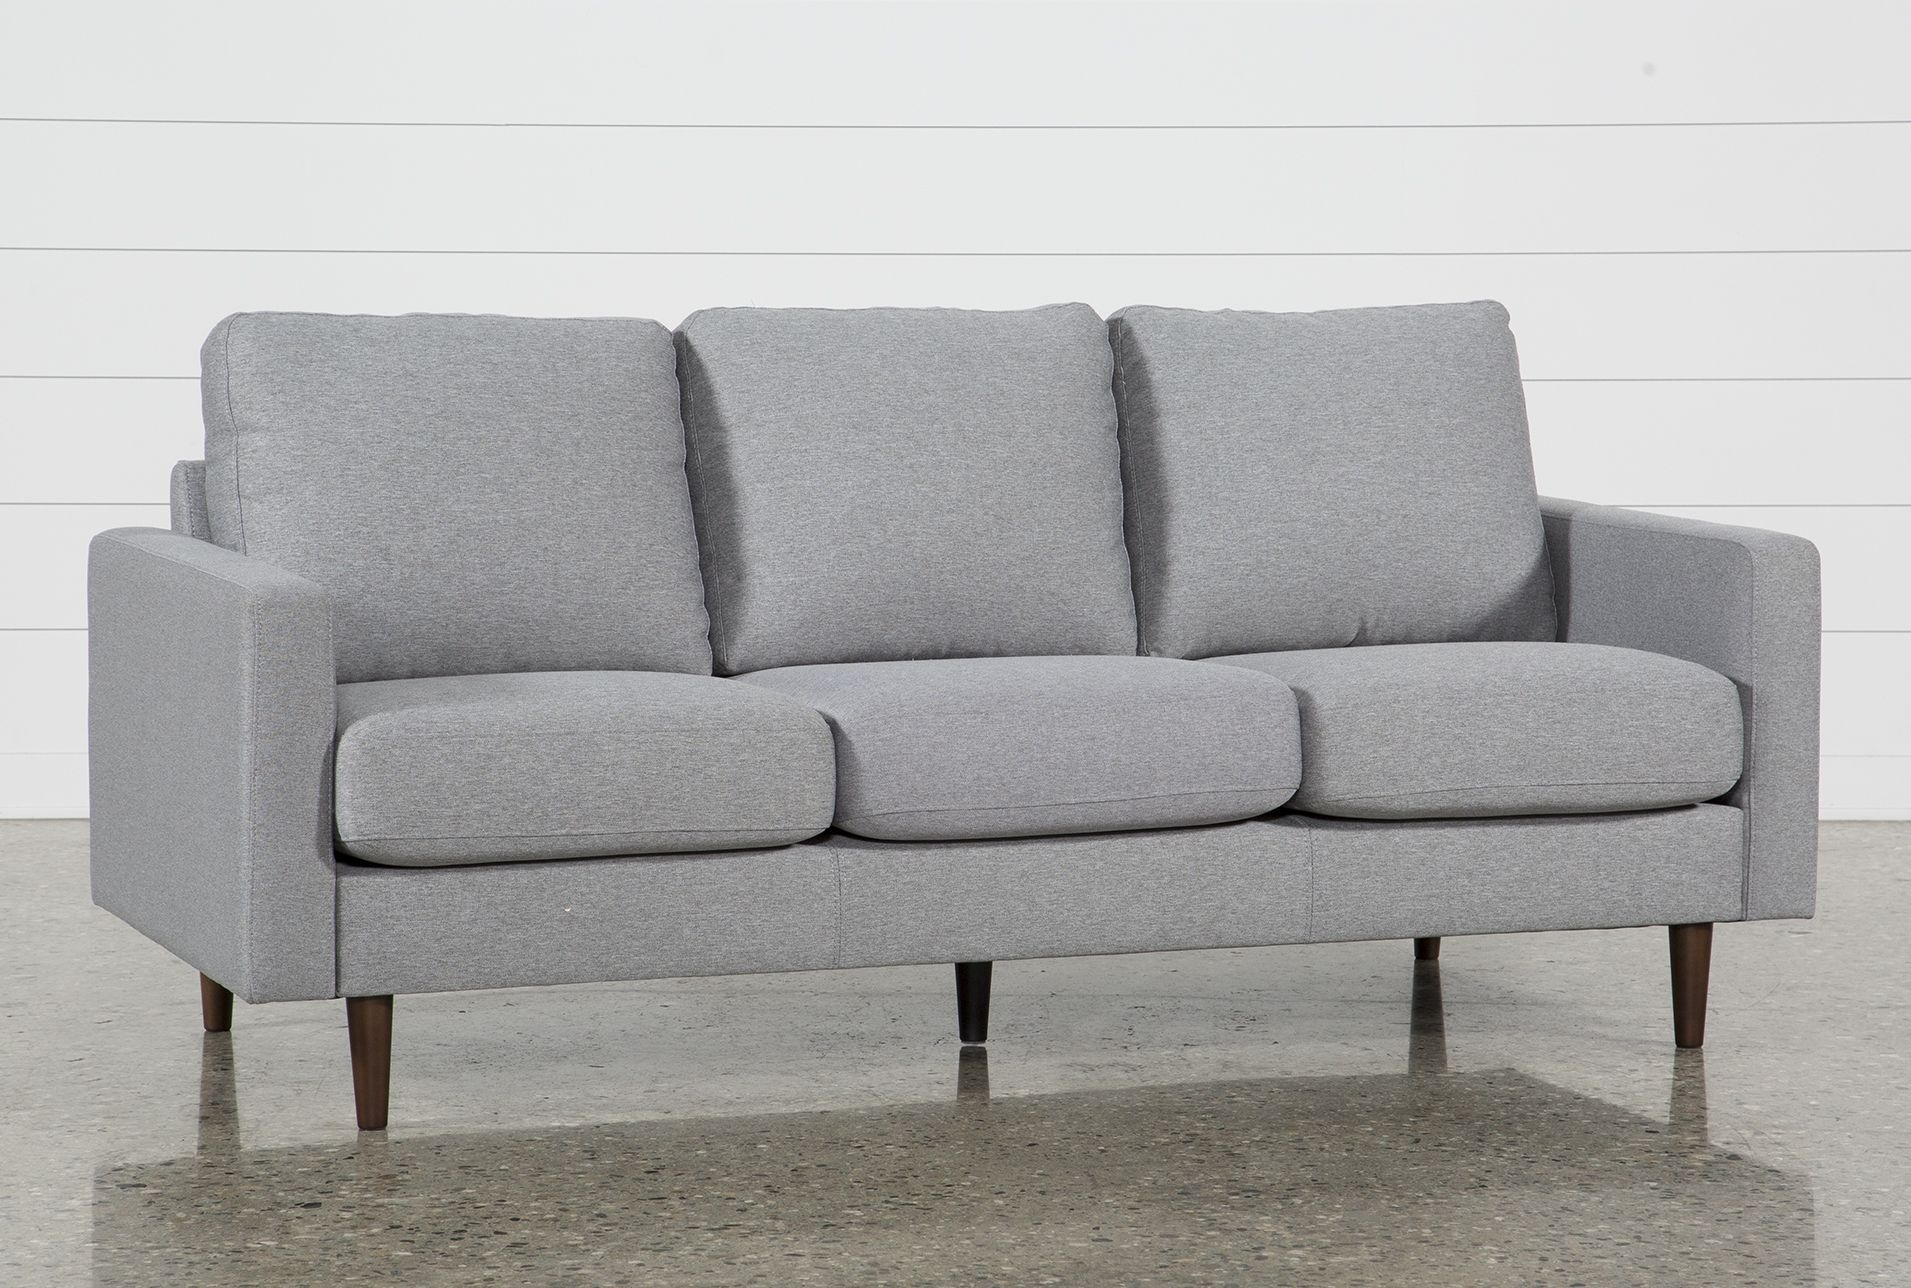 David Grey Sofa | Products intended for Turdur 2 Piece Sectionals With Laf Loveseat (Image 5 of 30)